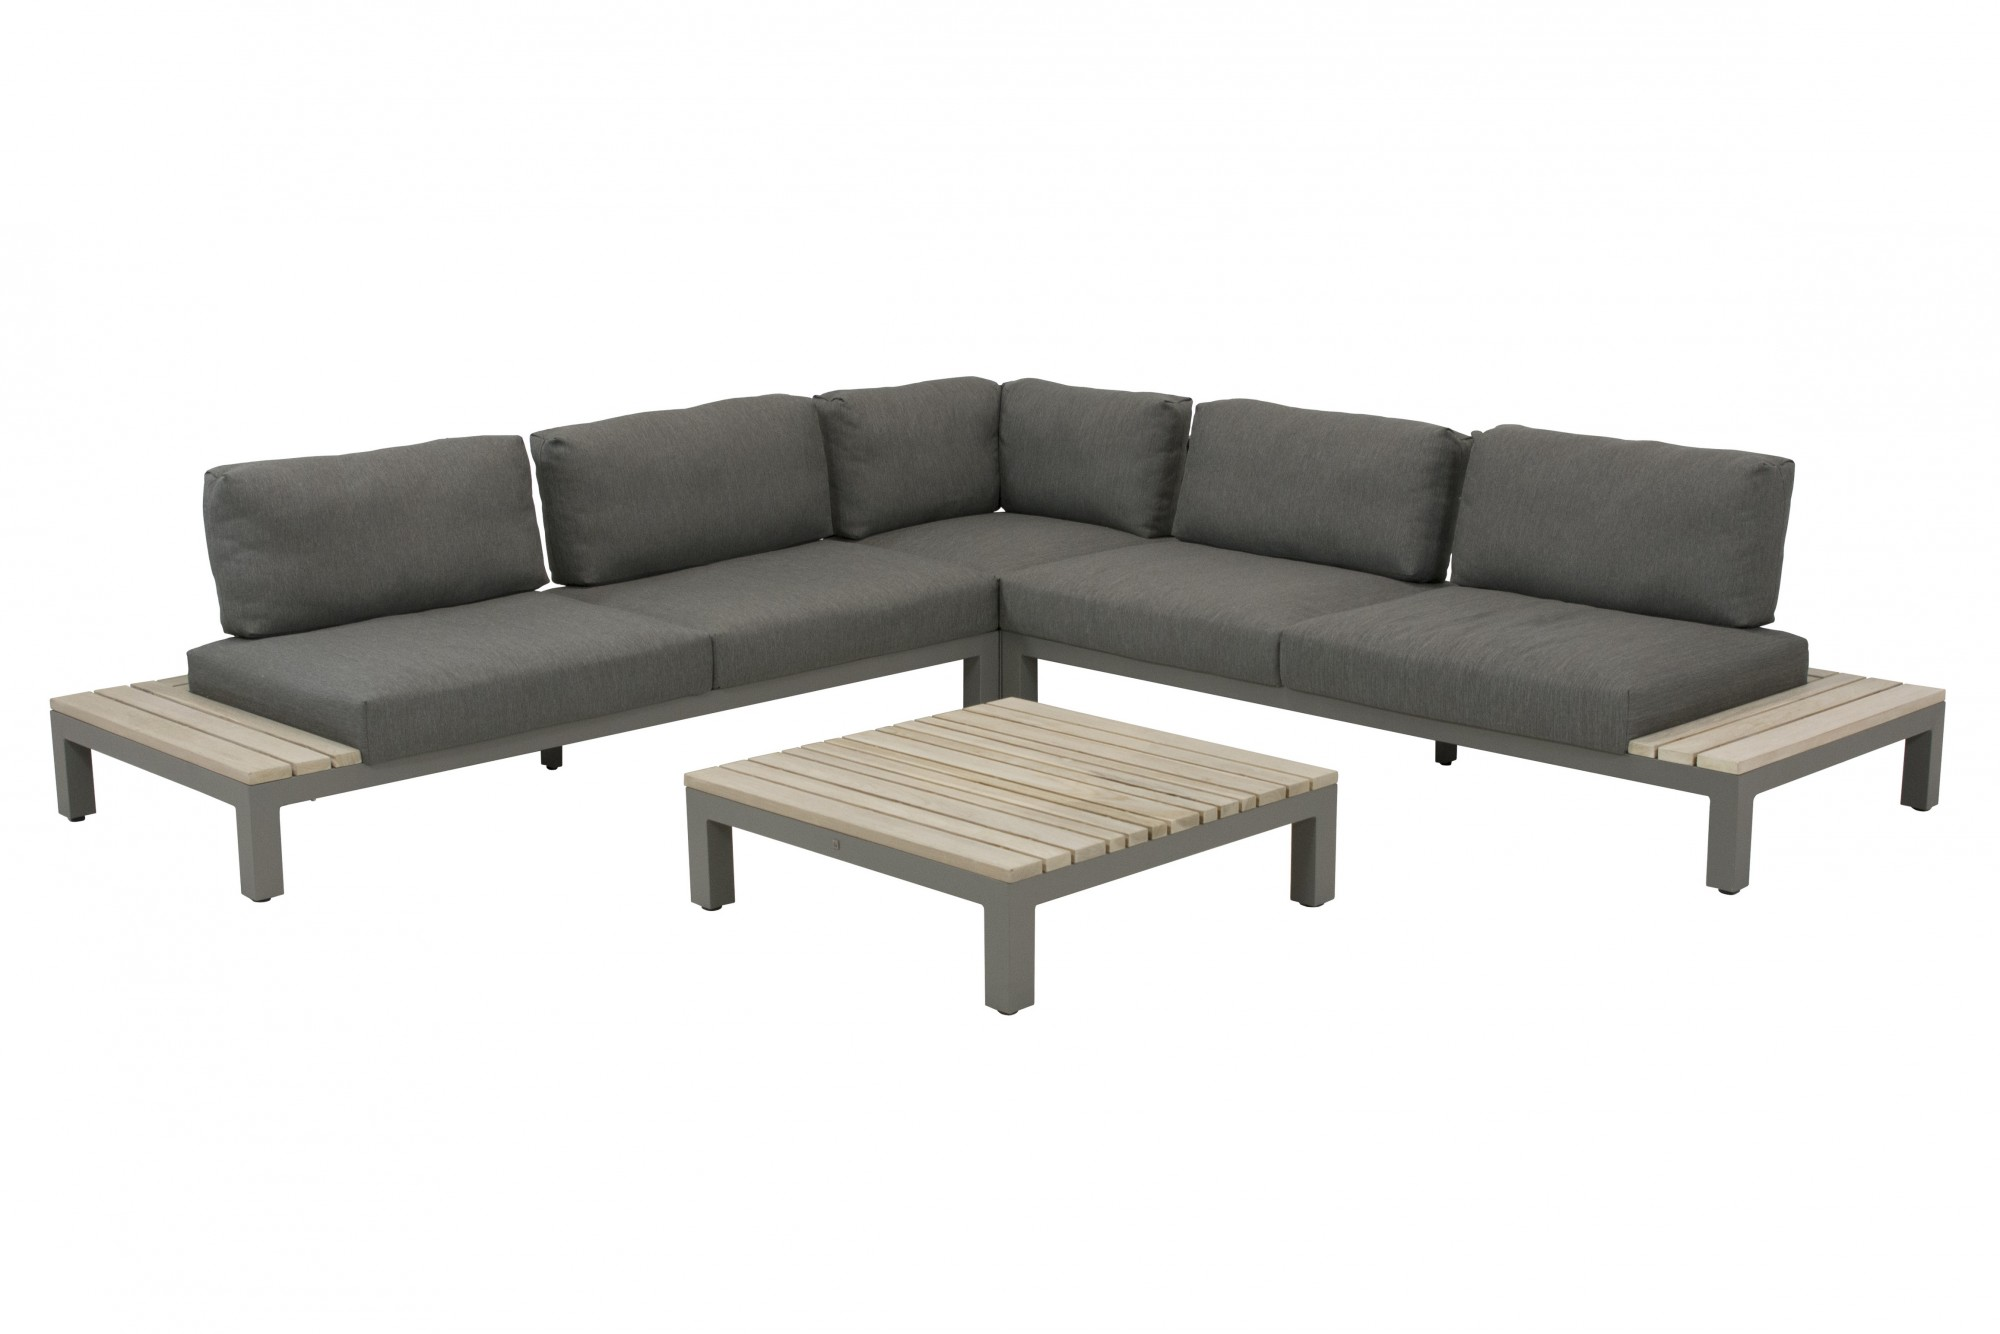 4 Seasons Outdoor Fidji Loungeset